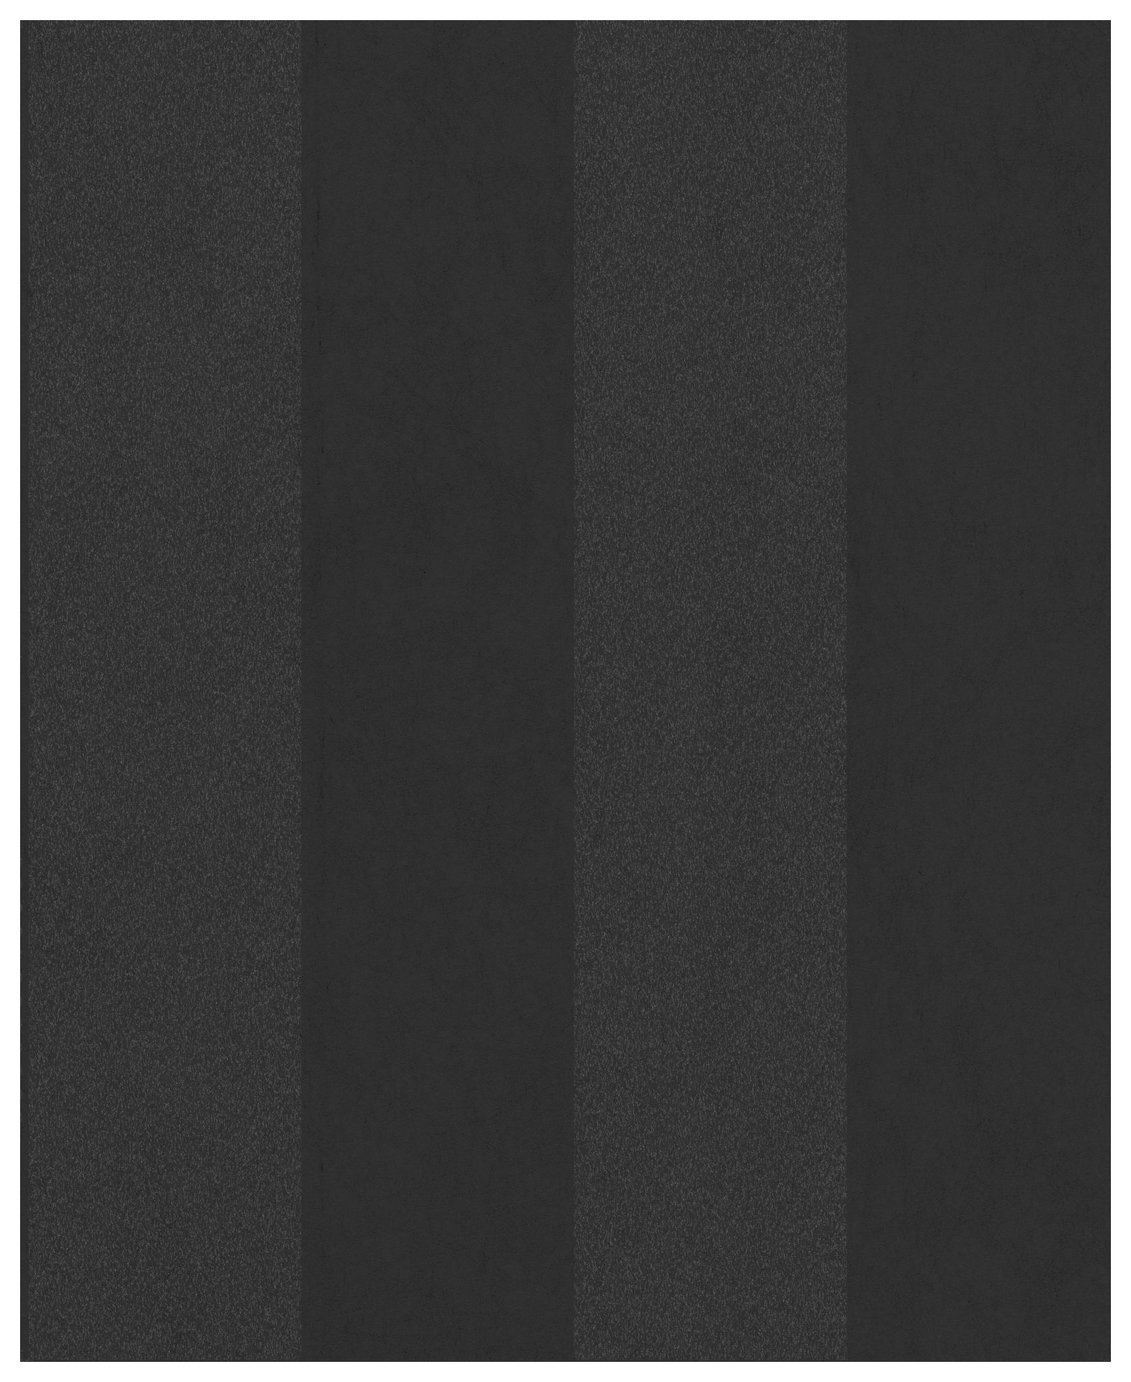 Image of Graham & Brown Artisan Stripe Glitter Wallpaper Black